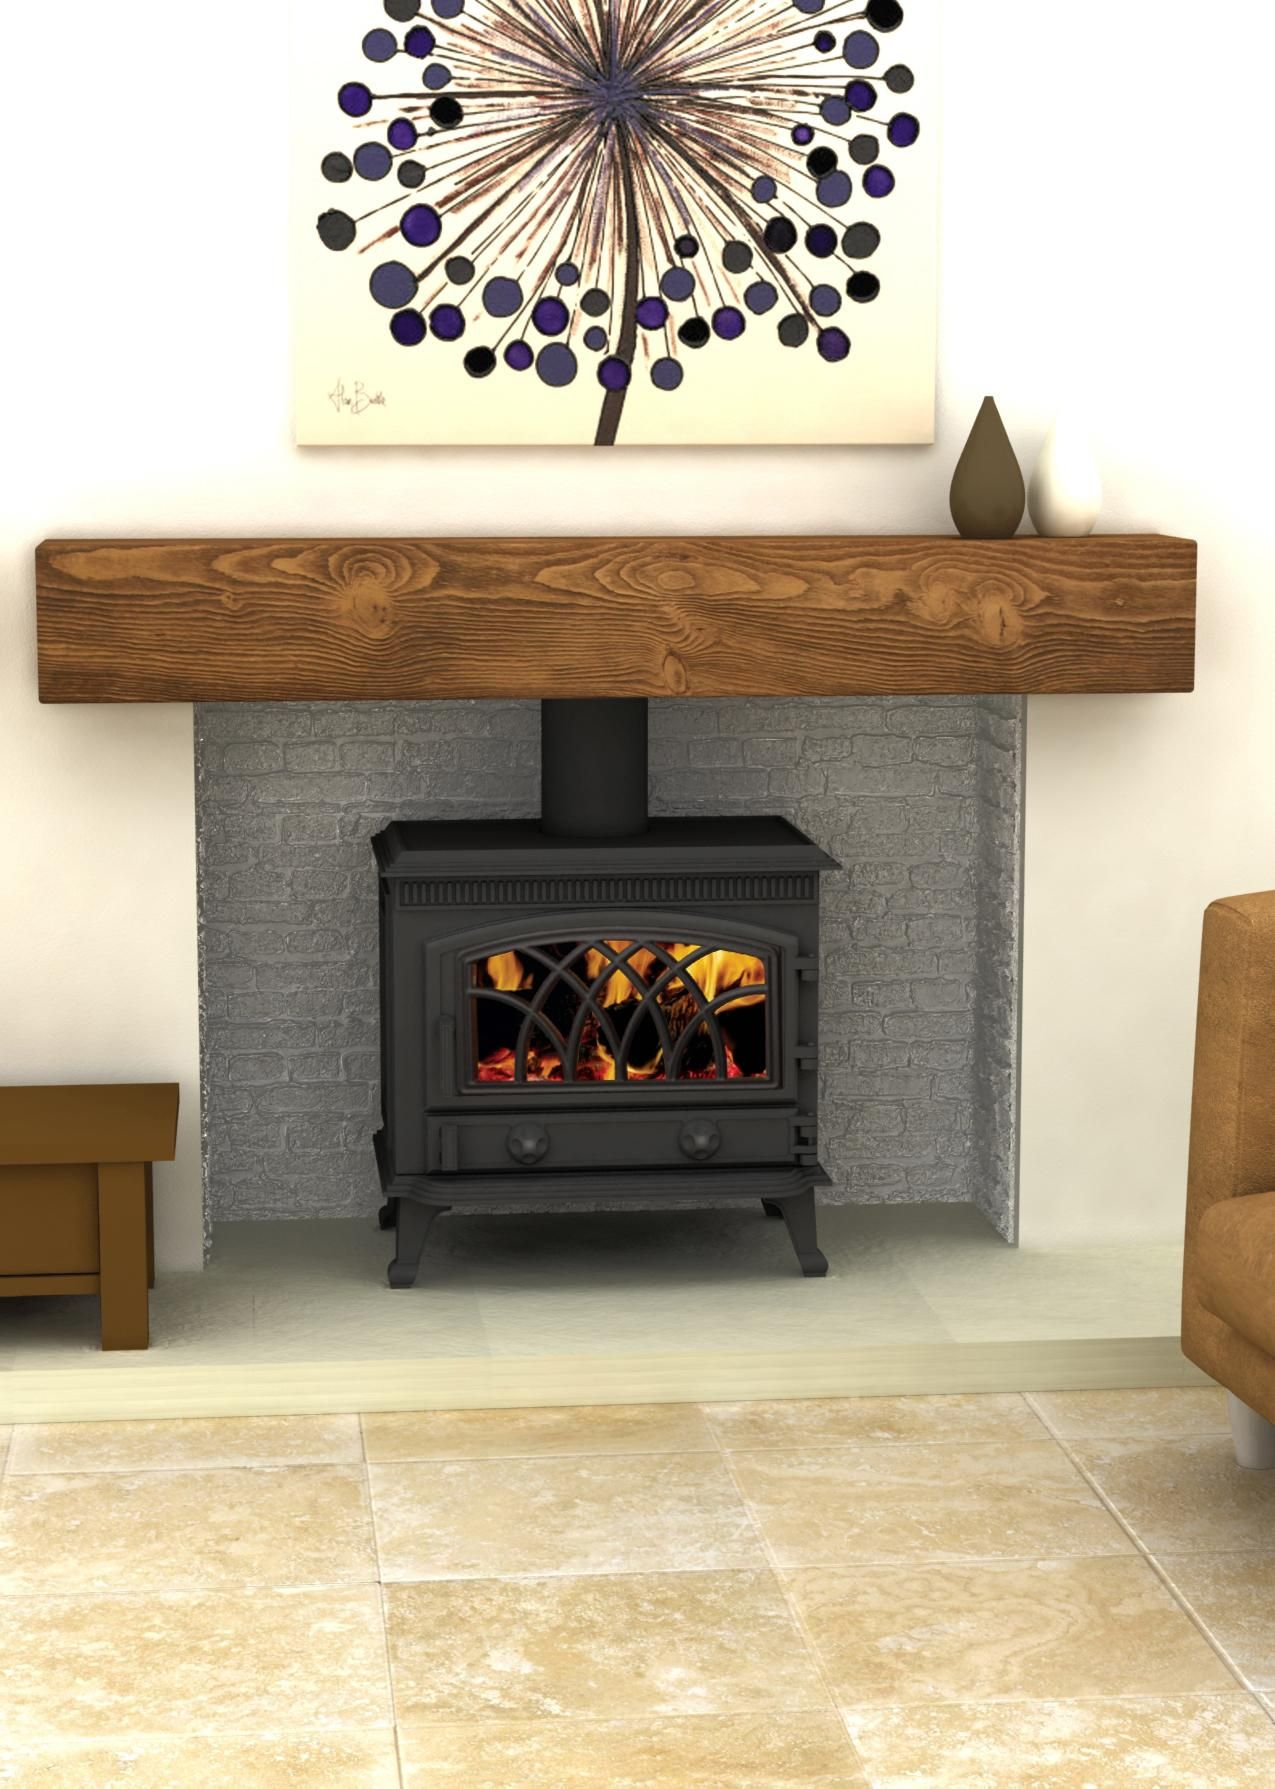 Hillandale monroe 7 cast iron multifuel stove wood for Large modern fireplaces